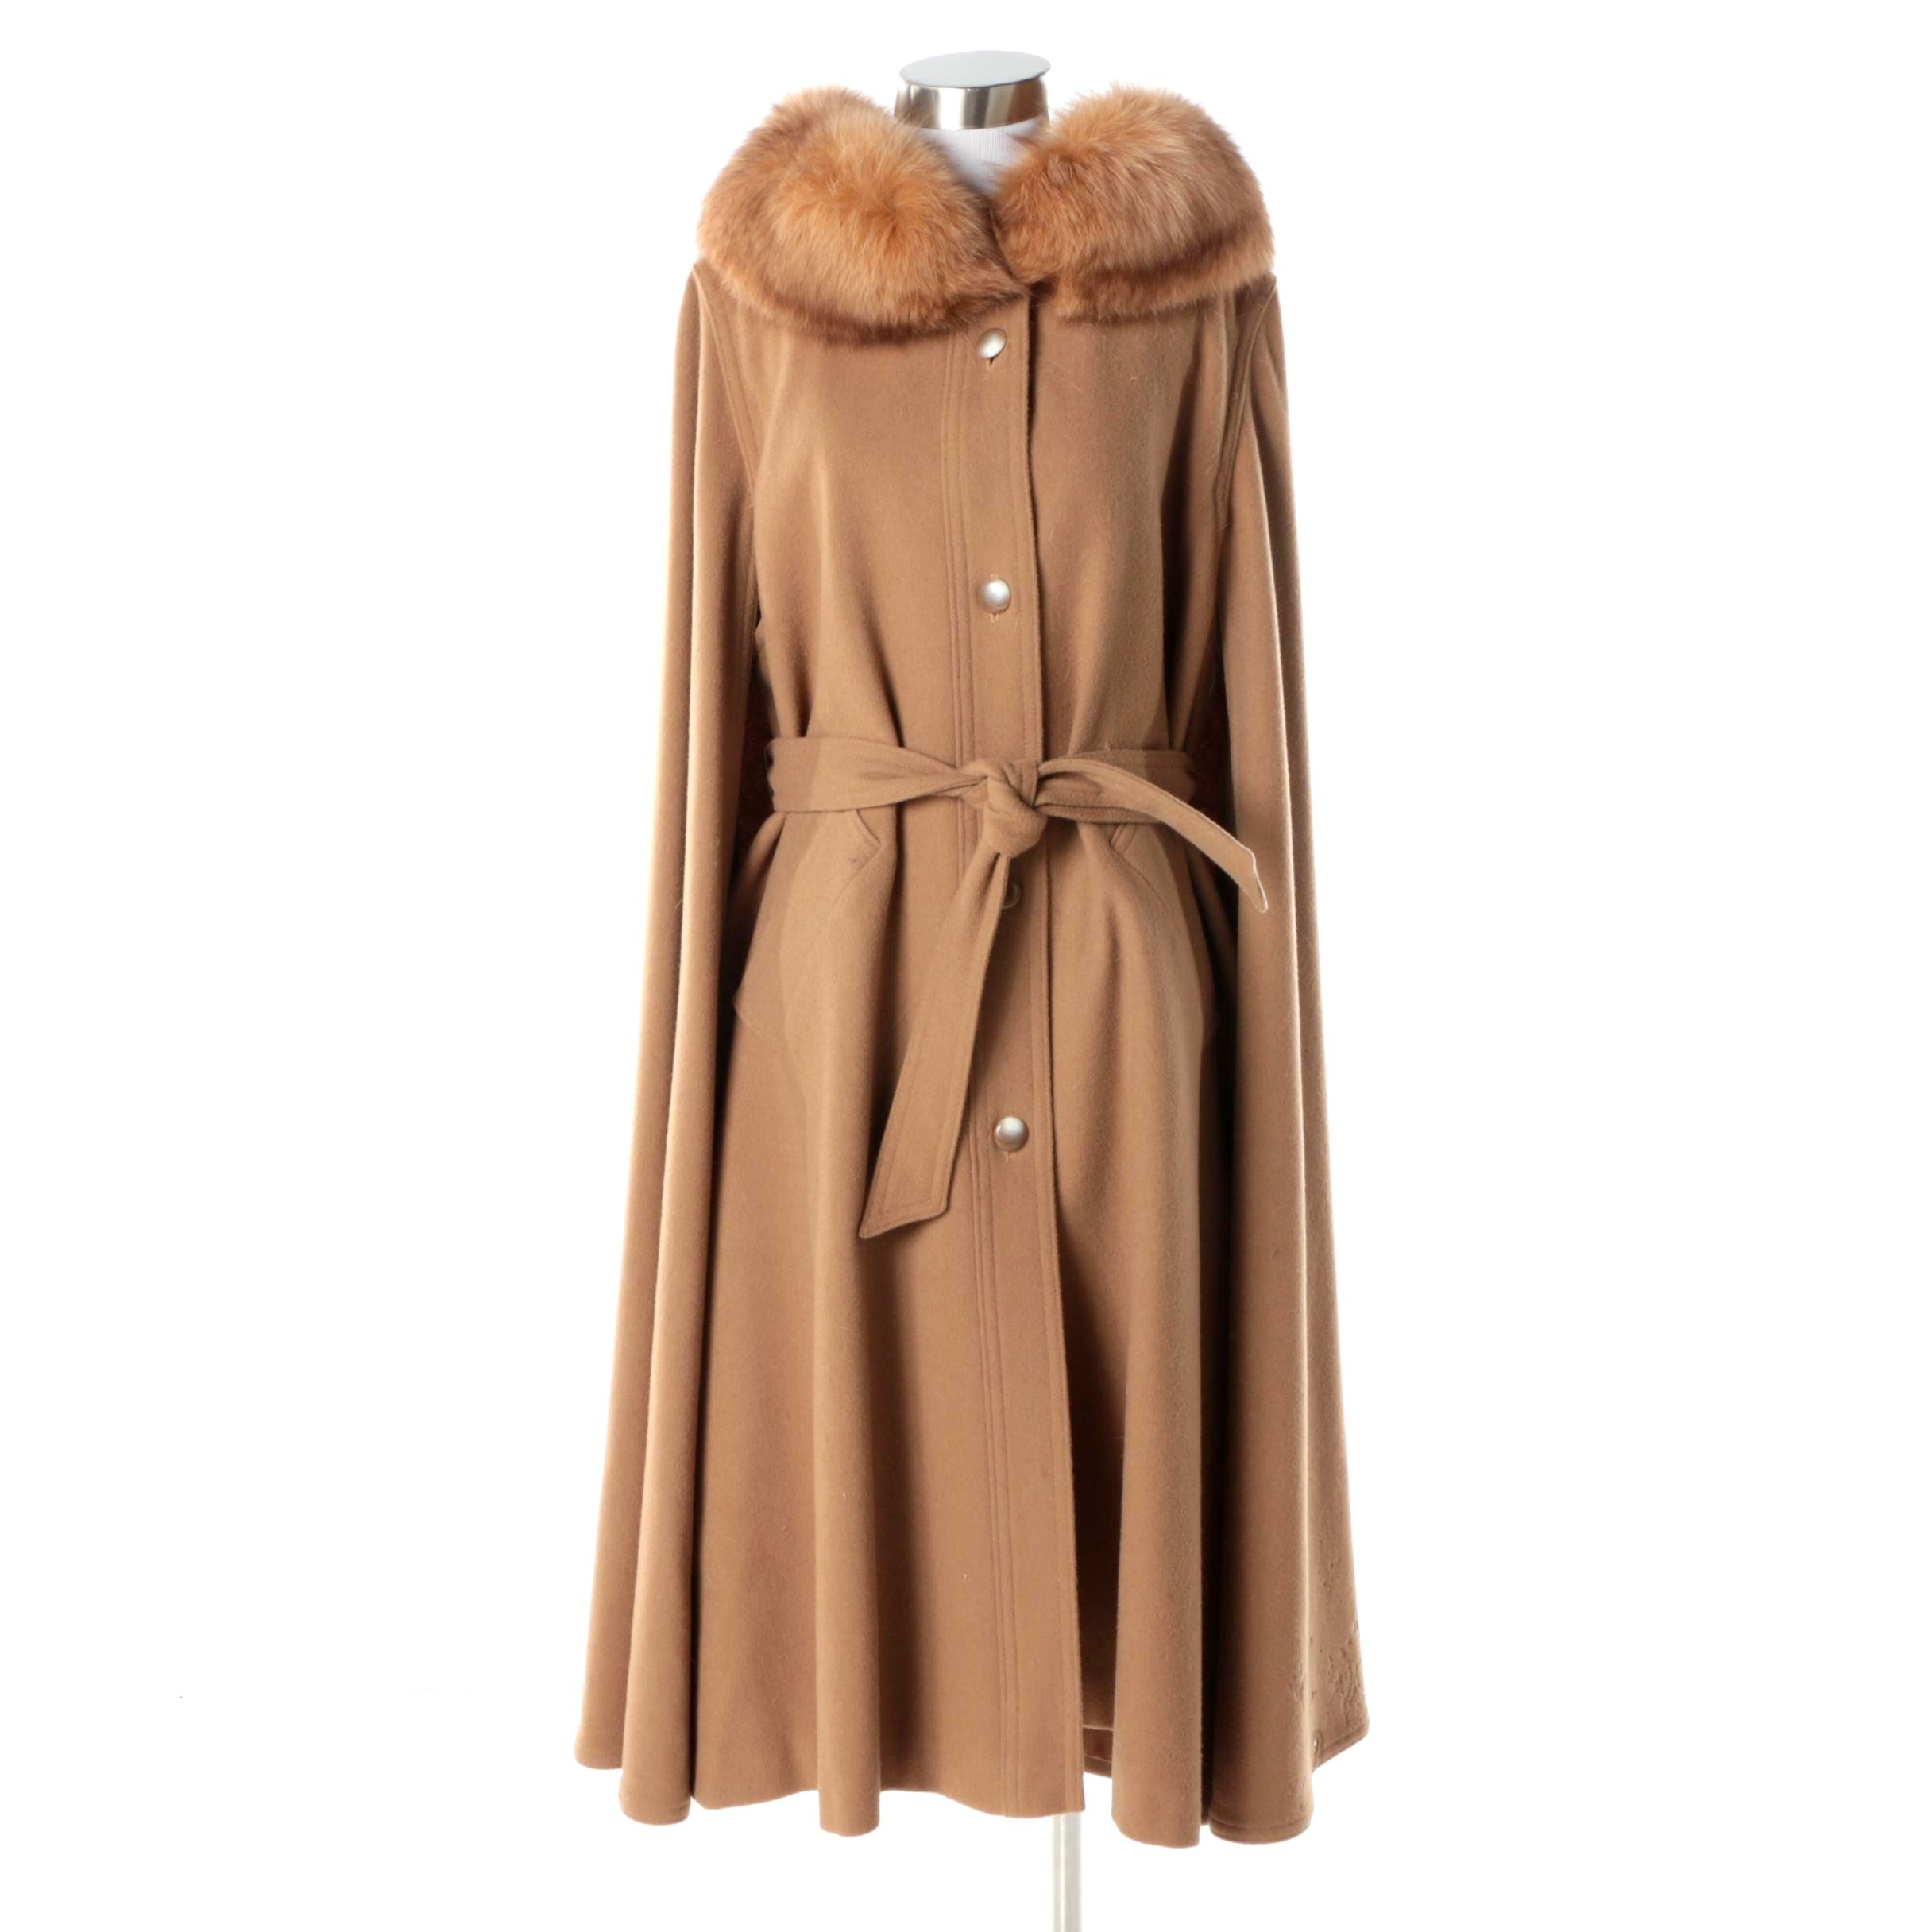 Women's Vintage Brown Wool Cape Coat with Fox Fur Collar